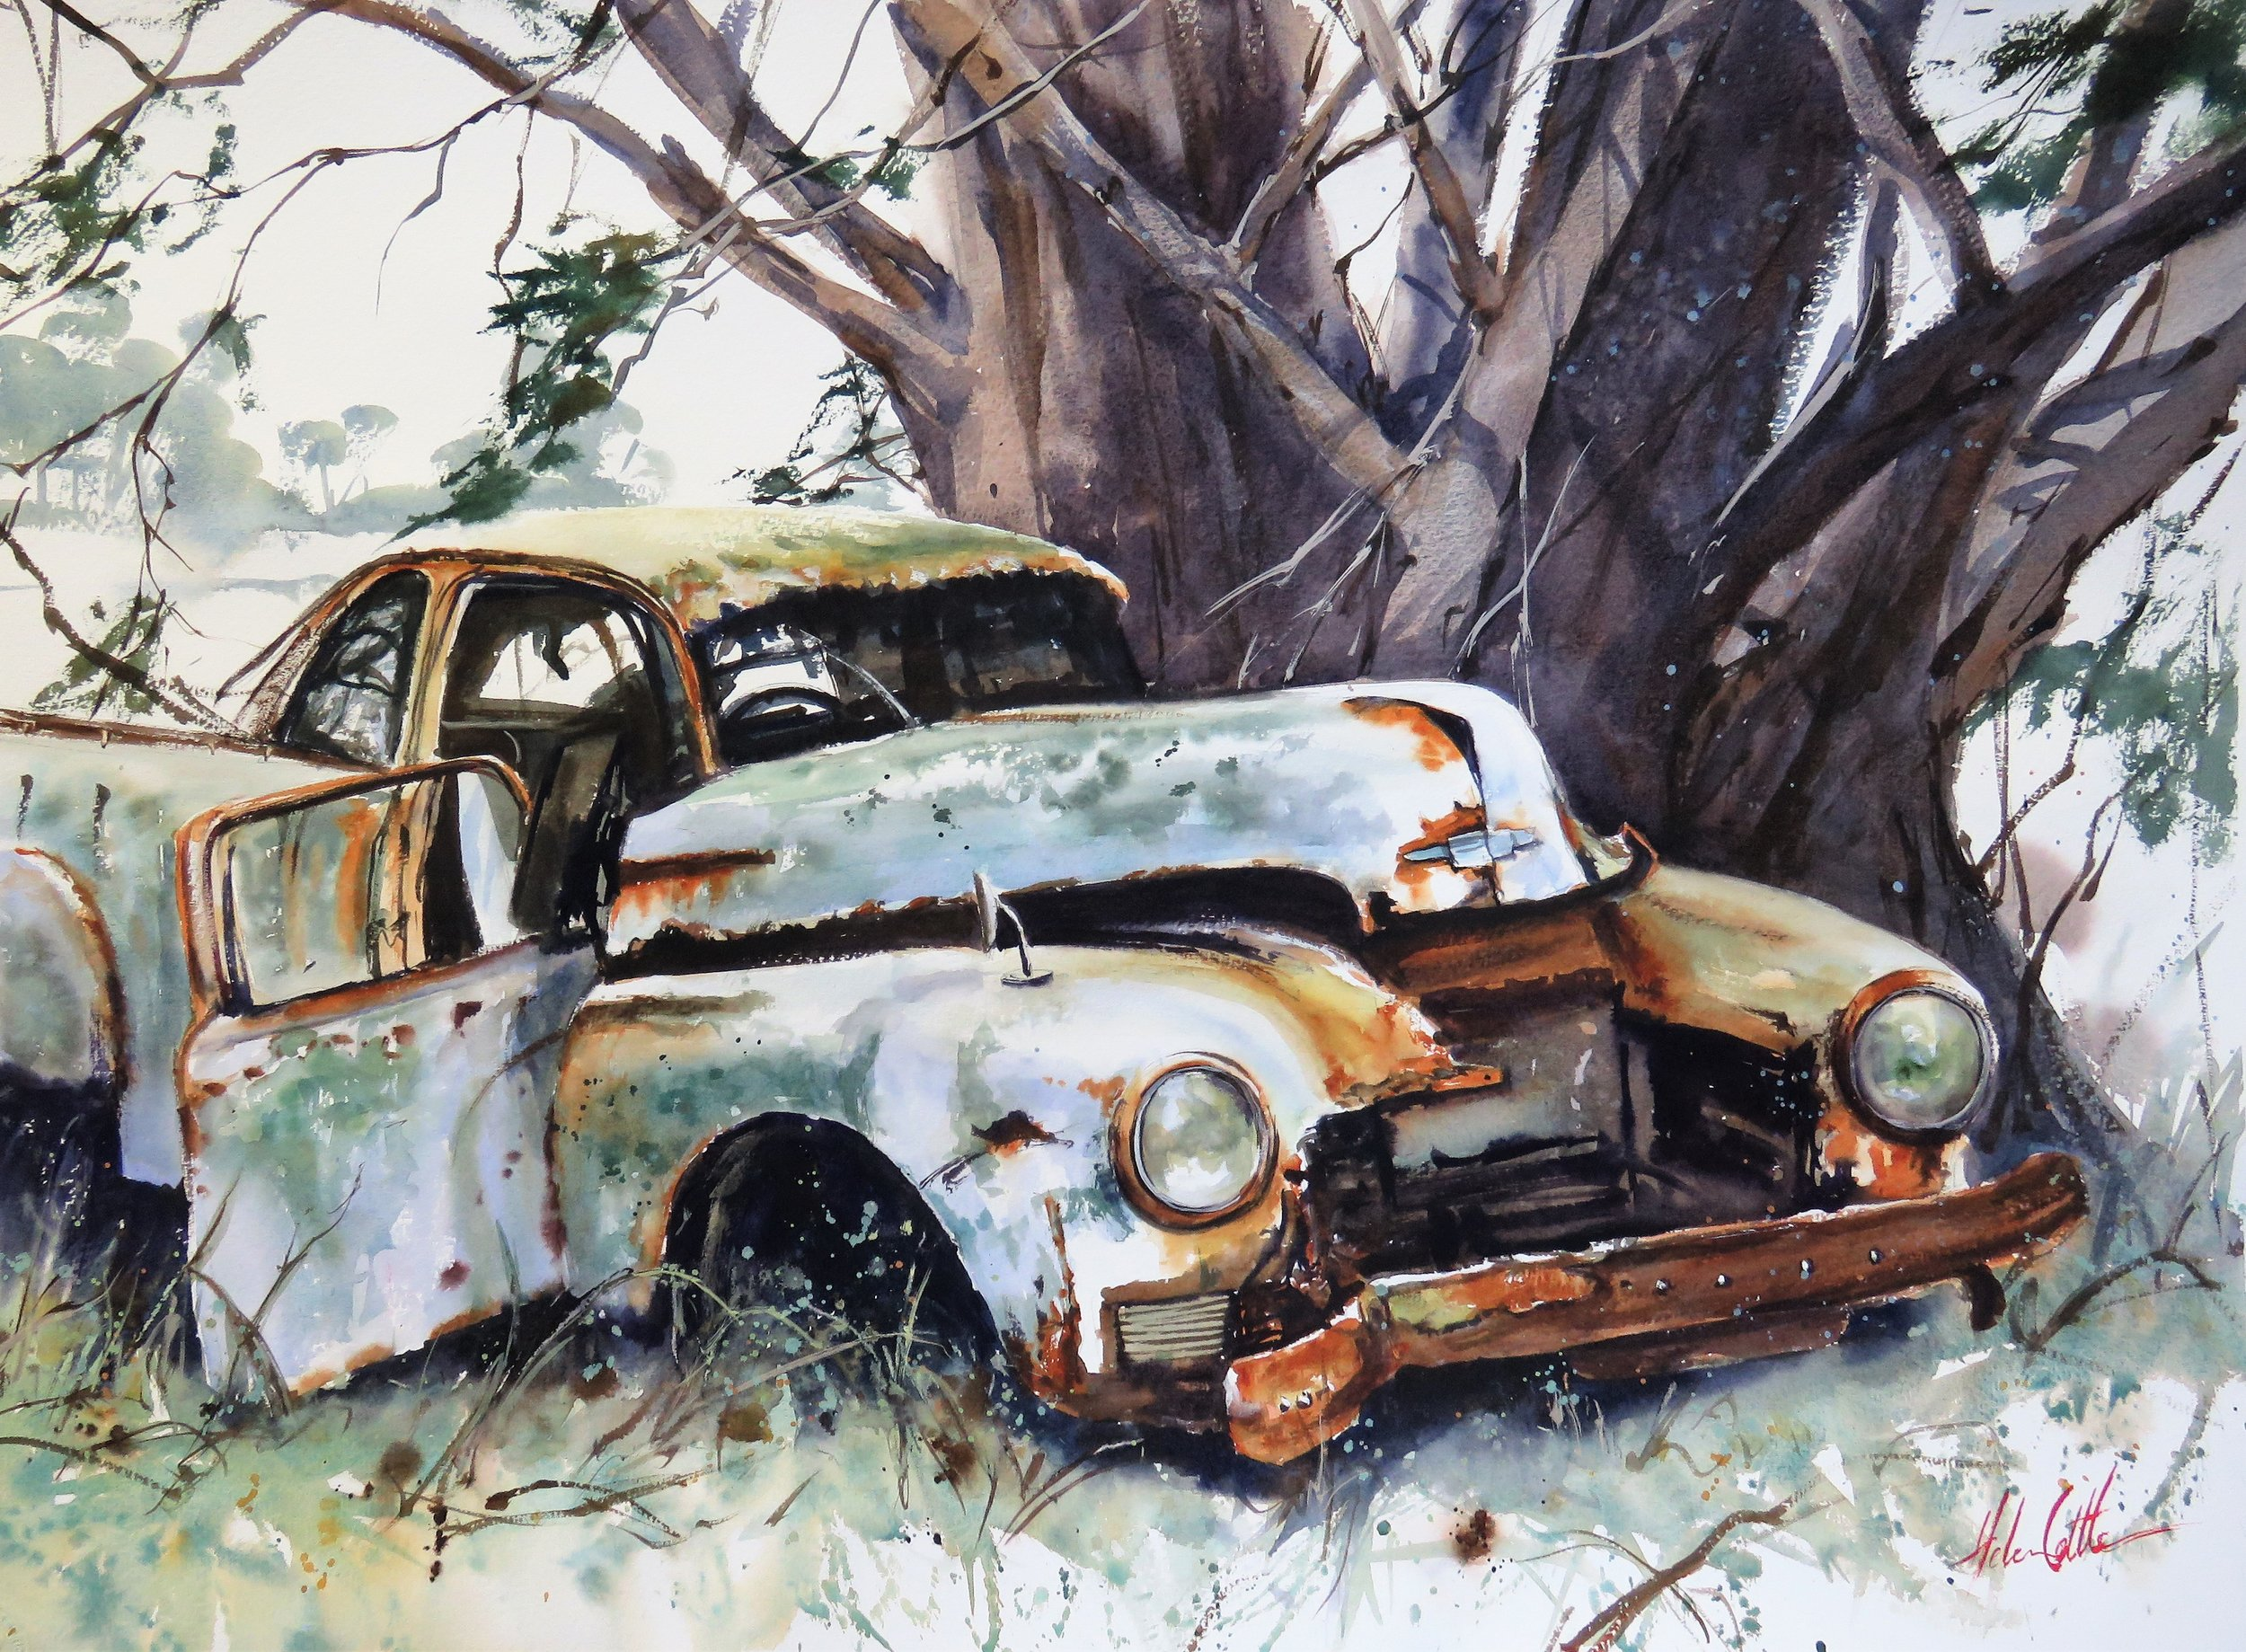 RUSTY RELIC WATERCOLOUR 74X96CM BY HELEN COTTLE.JPG